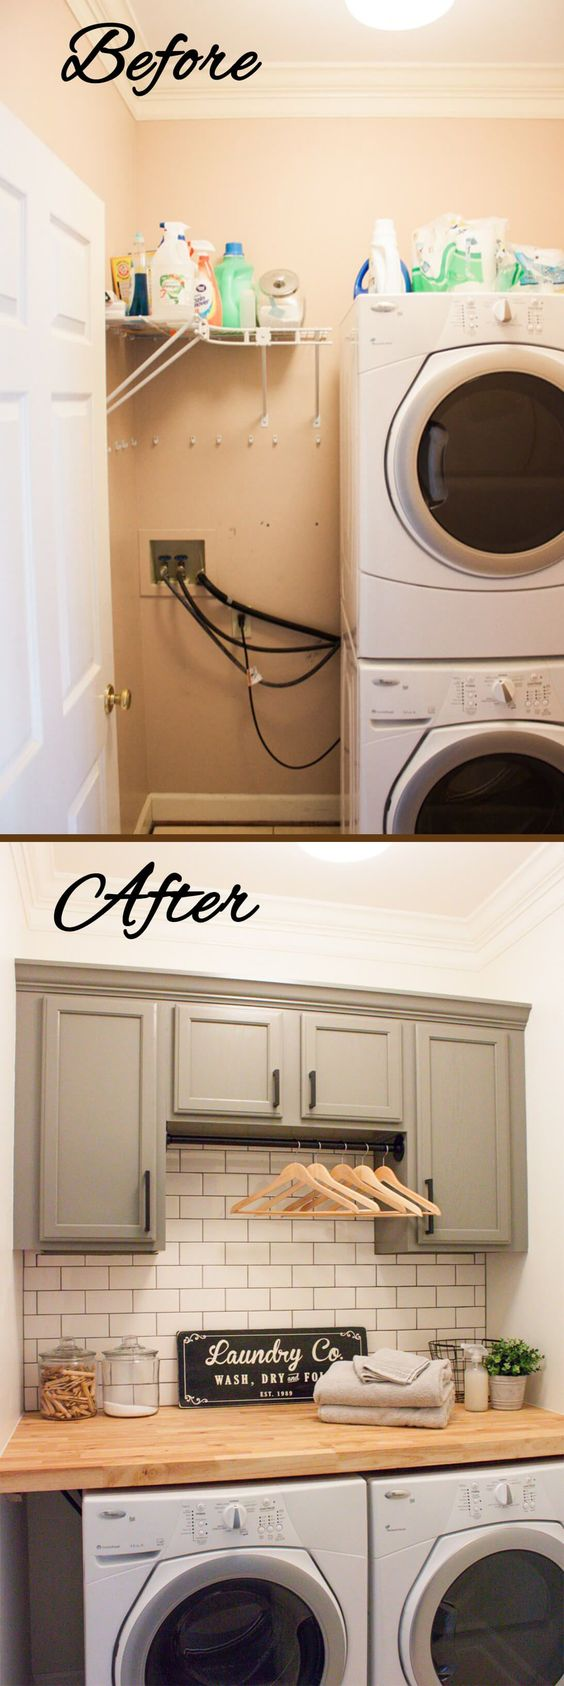 91 Best Budget friendly Laundry room makeover Simphome